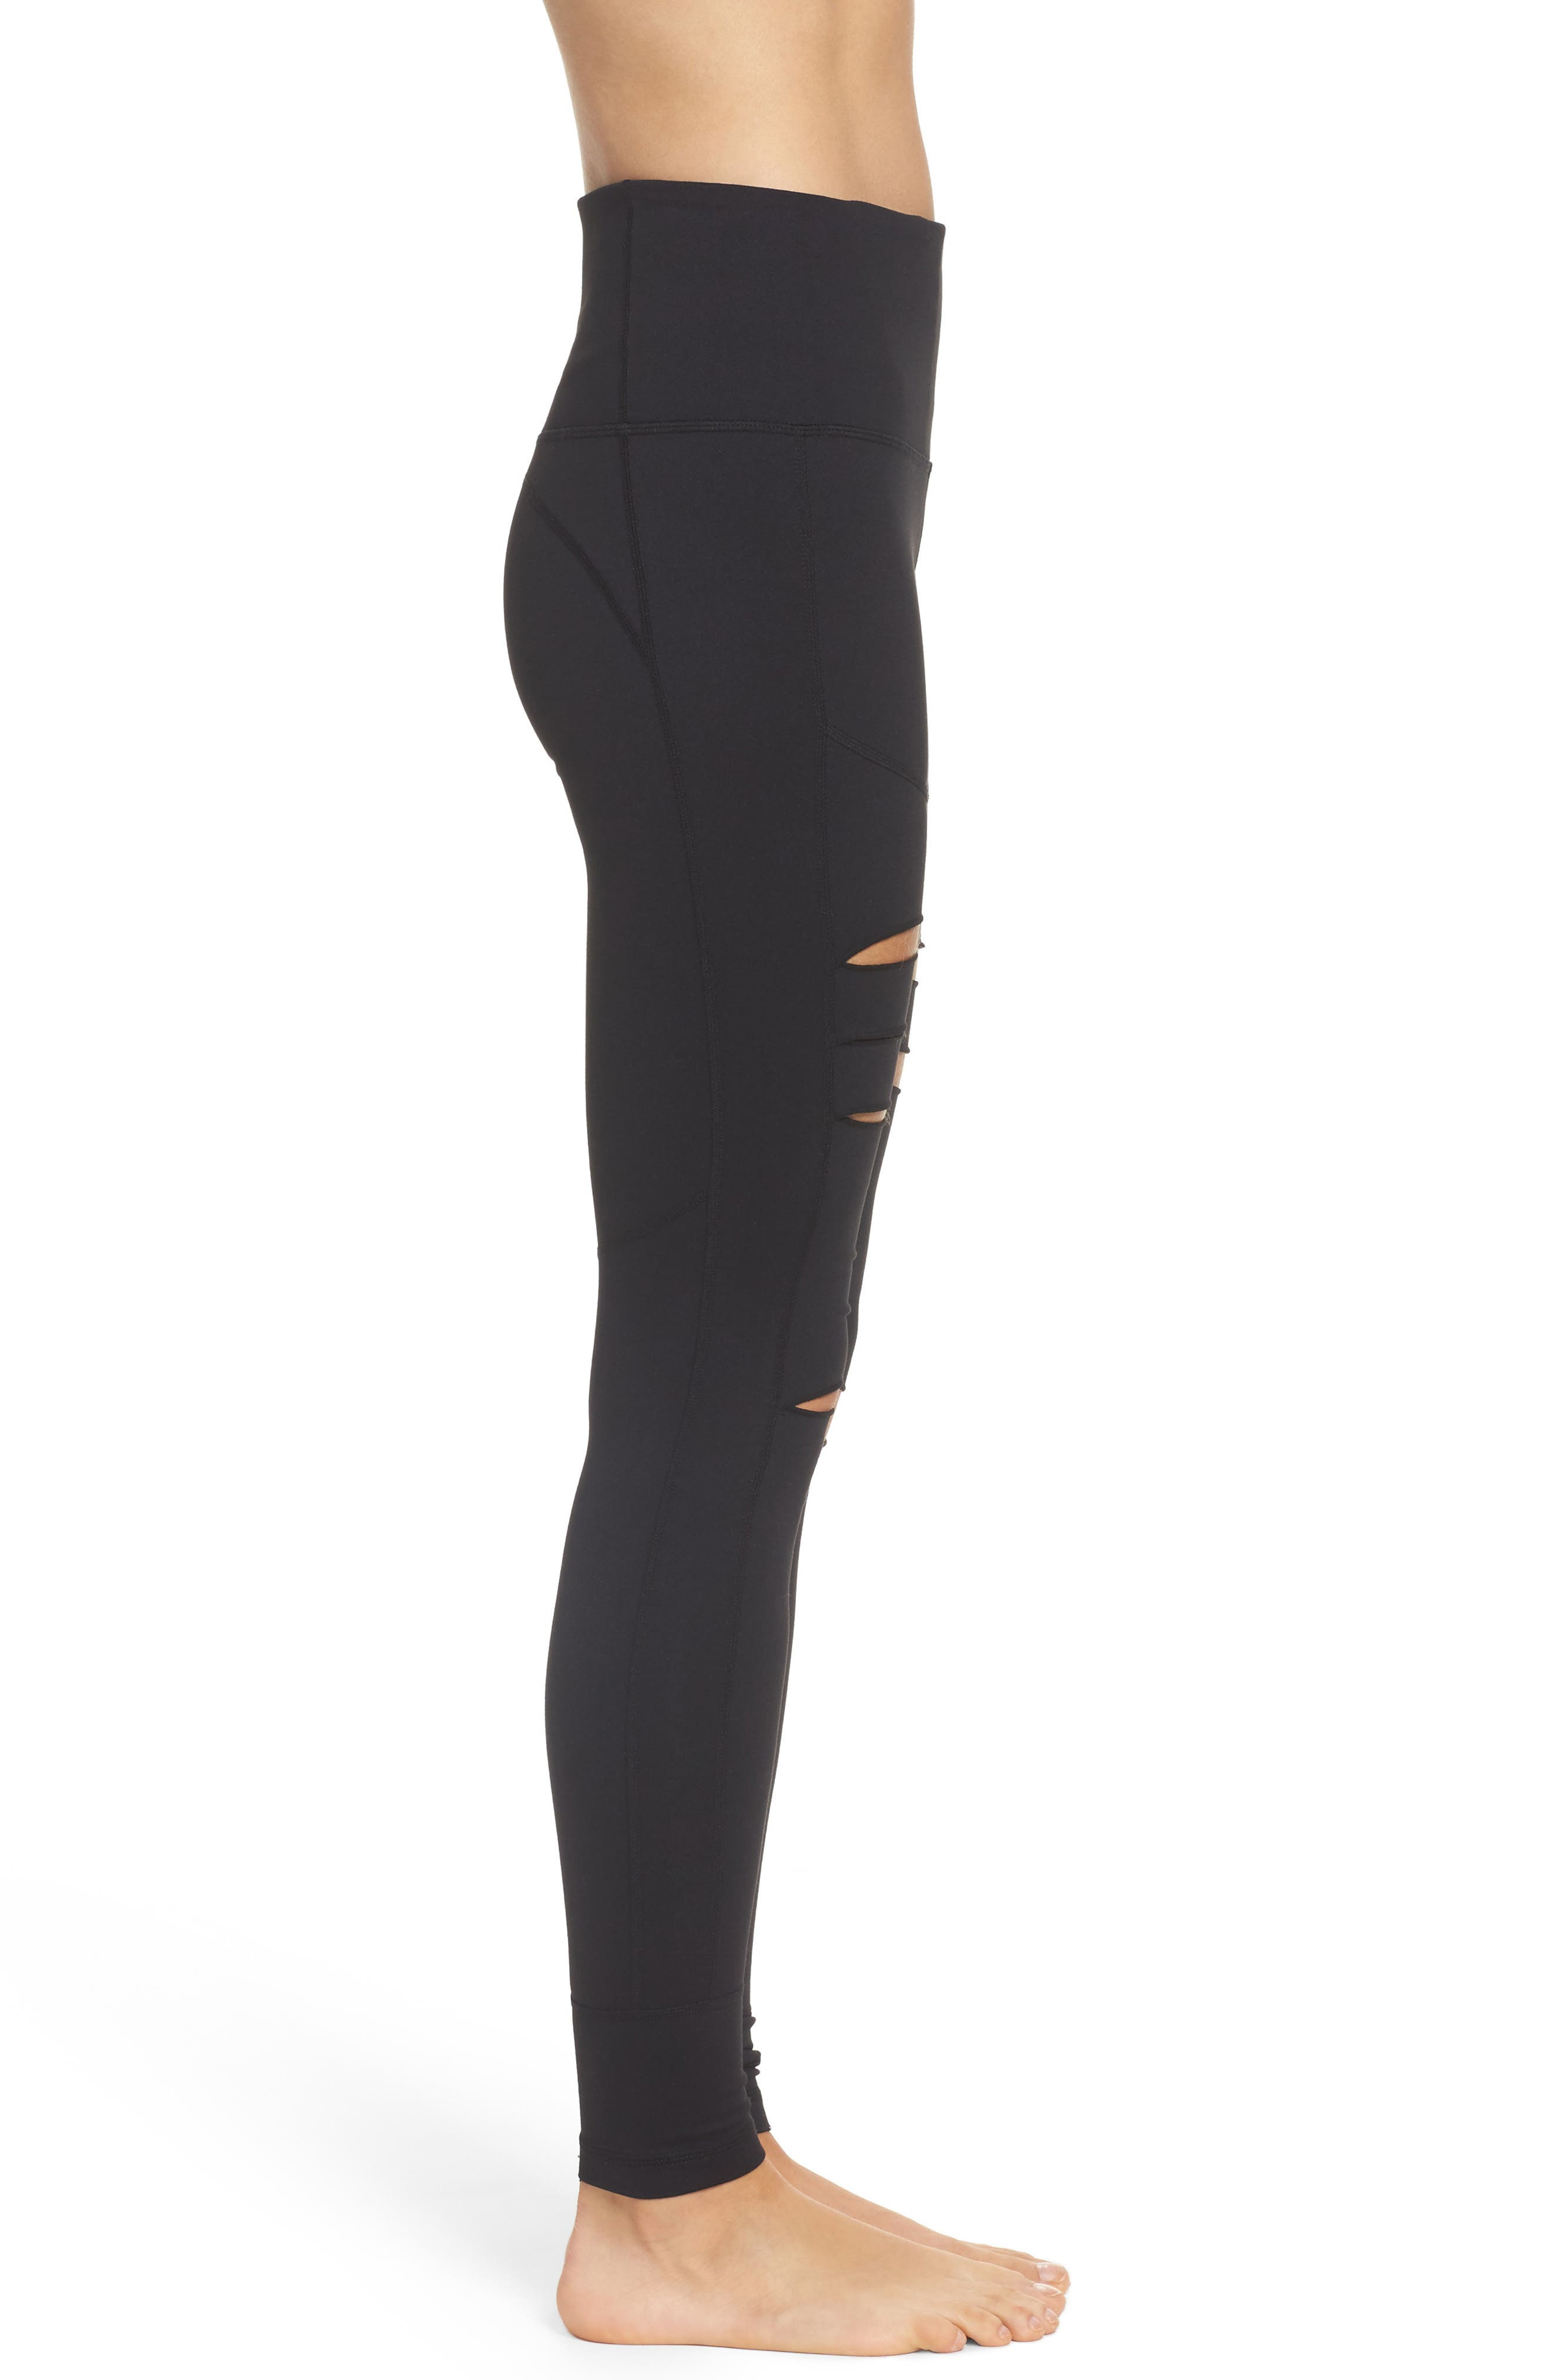 Alternate Image 3  - Zella Cece High Waist Open Knee Leggings